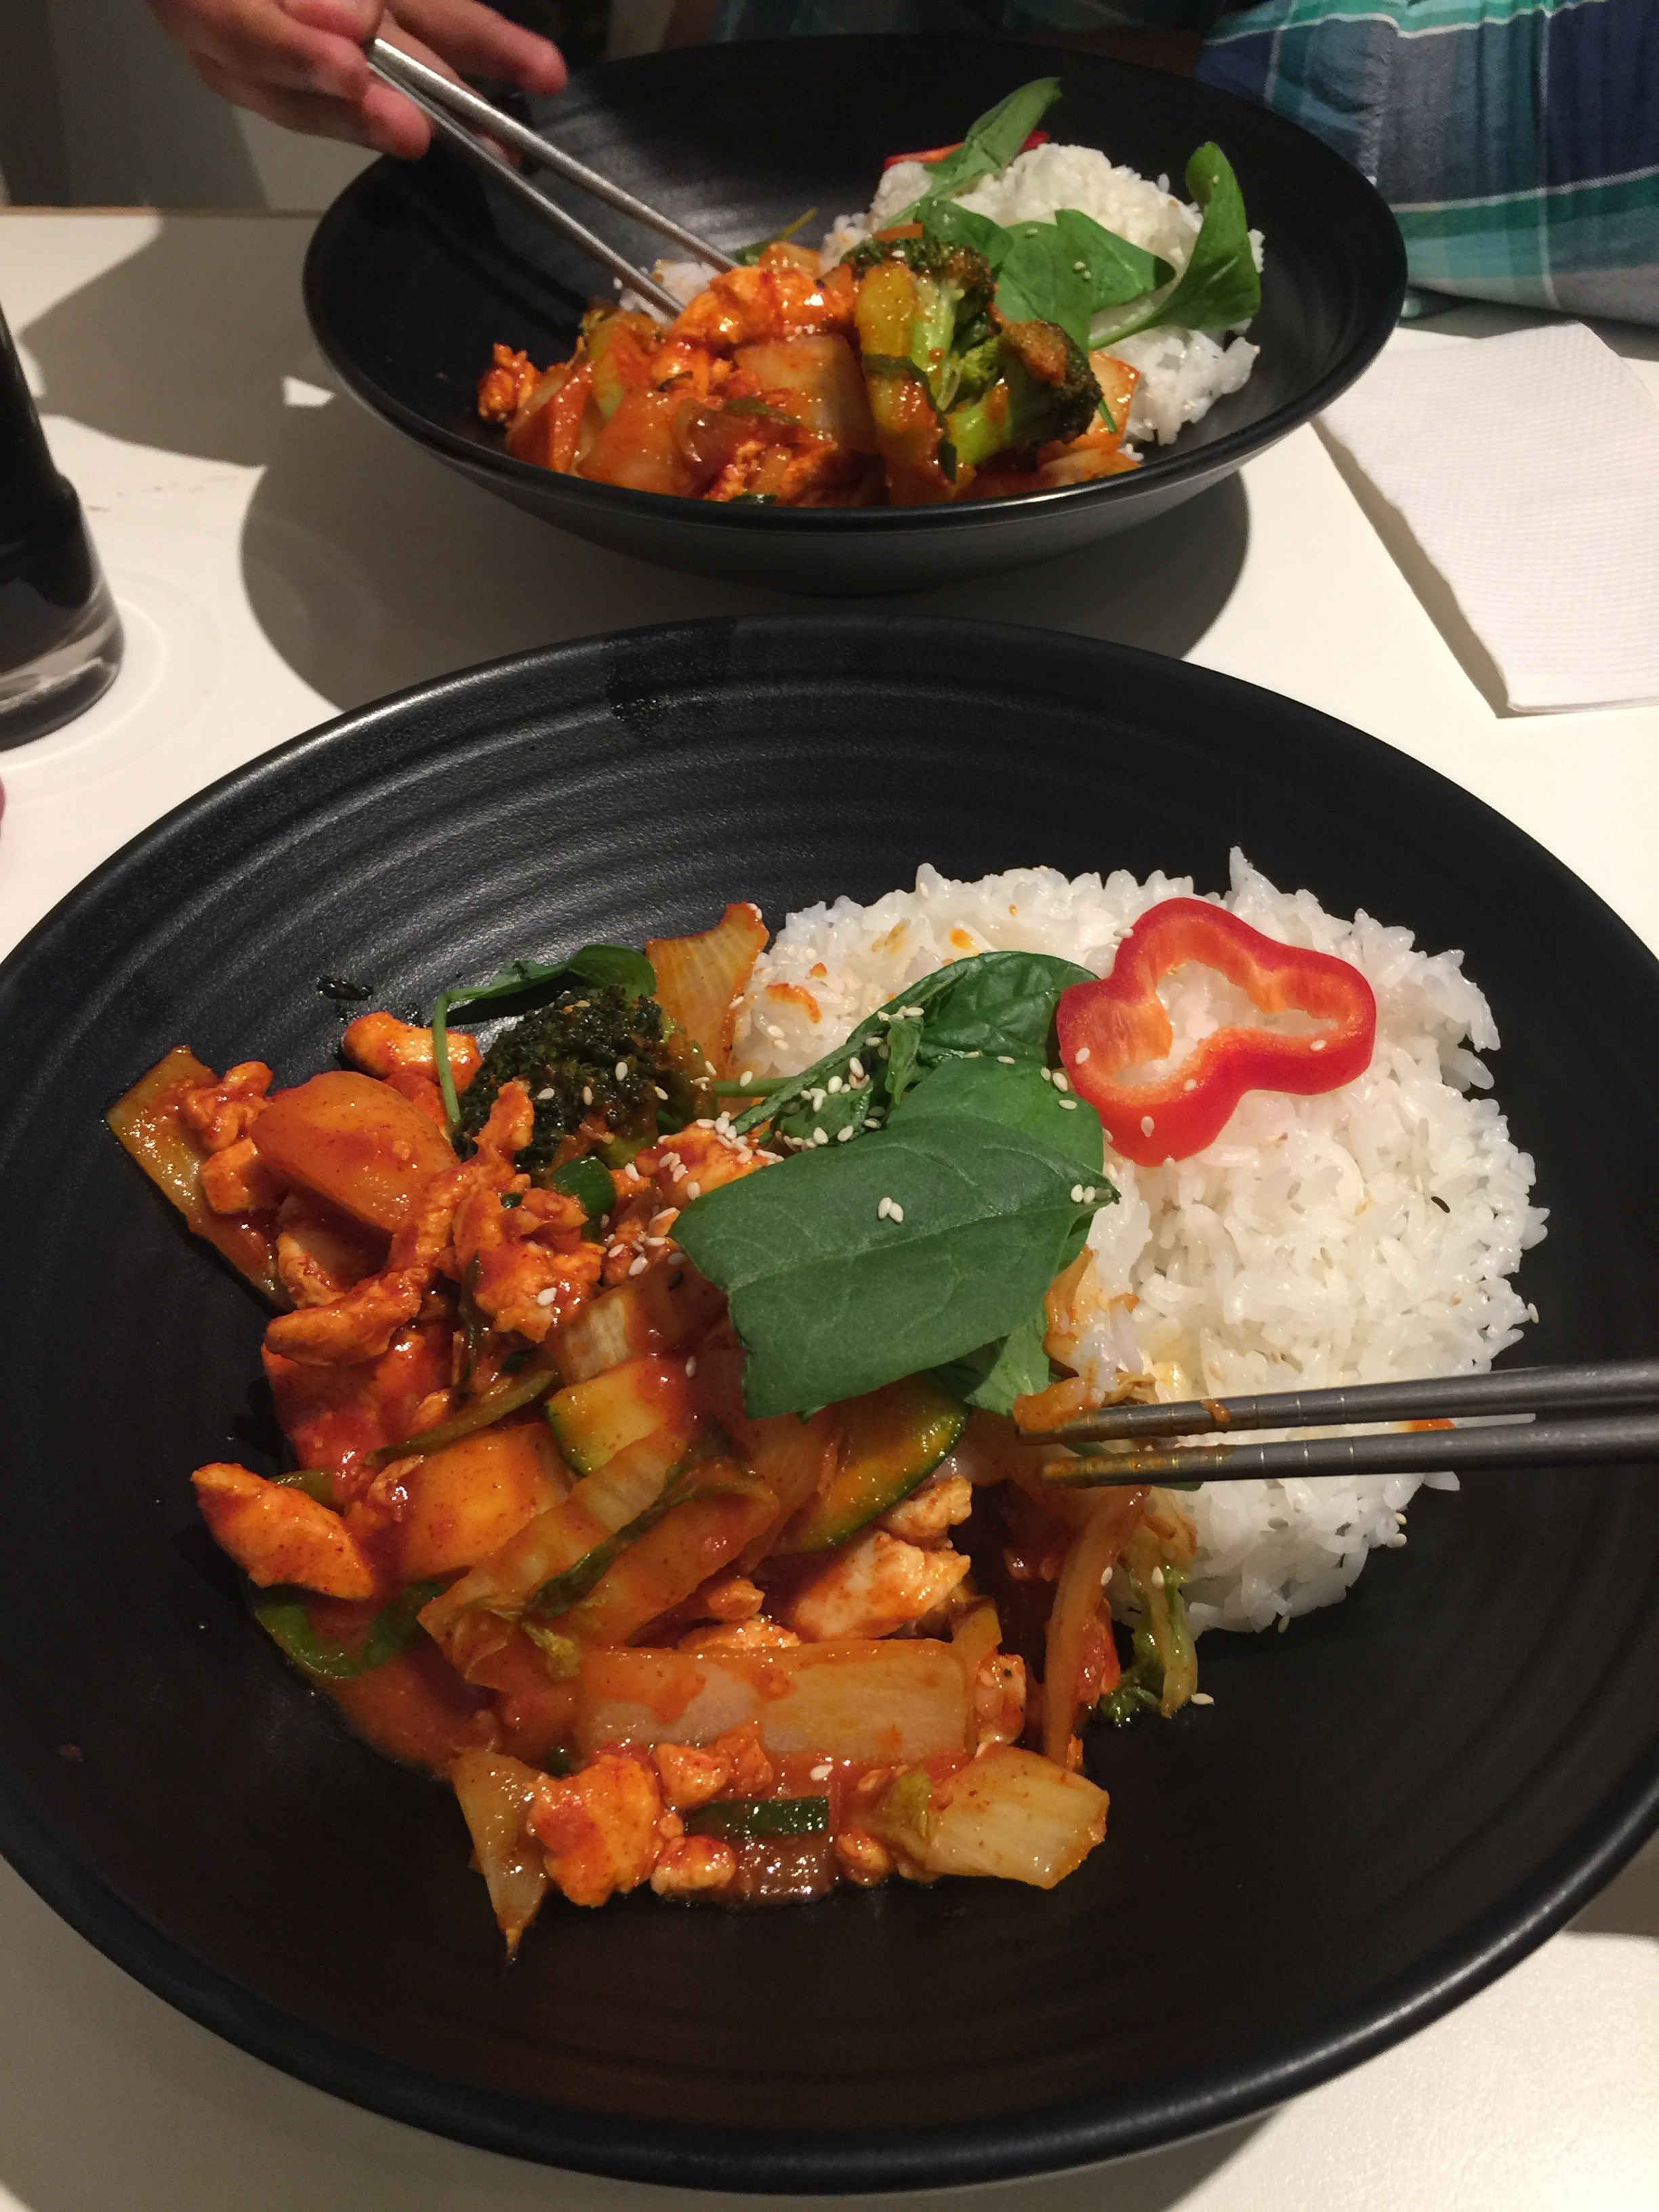 YamYam Berlin for some Korean spicy food if you can handle it